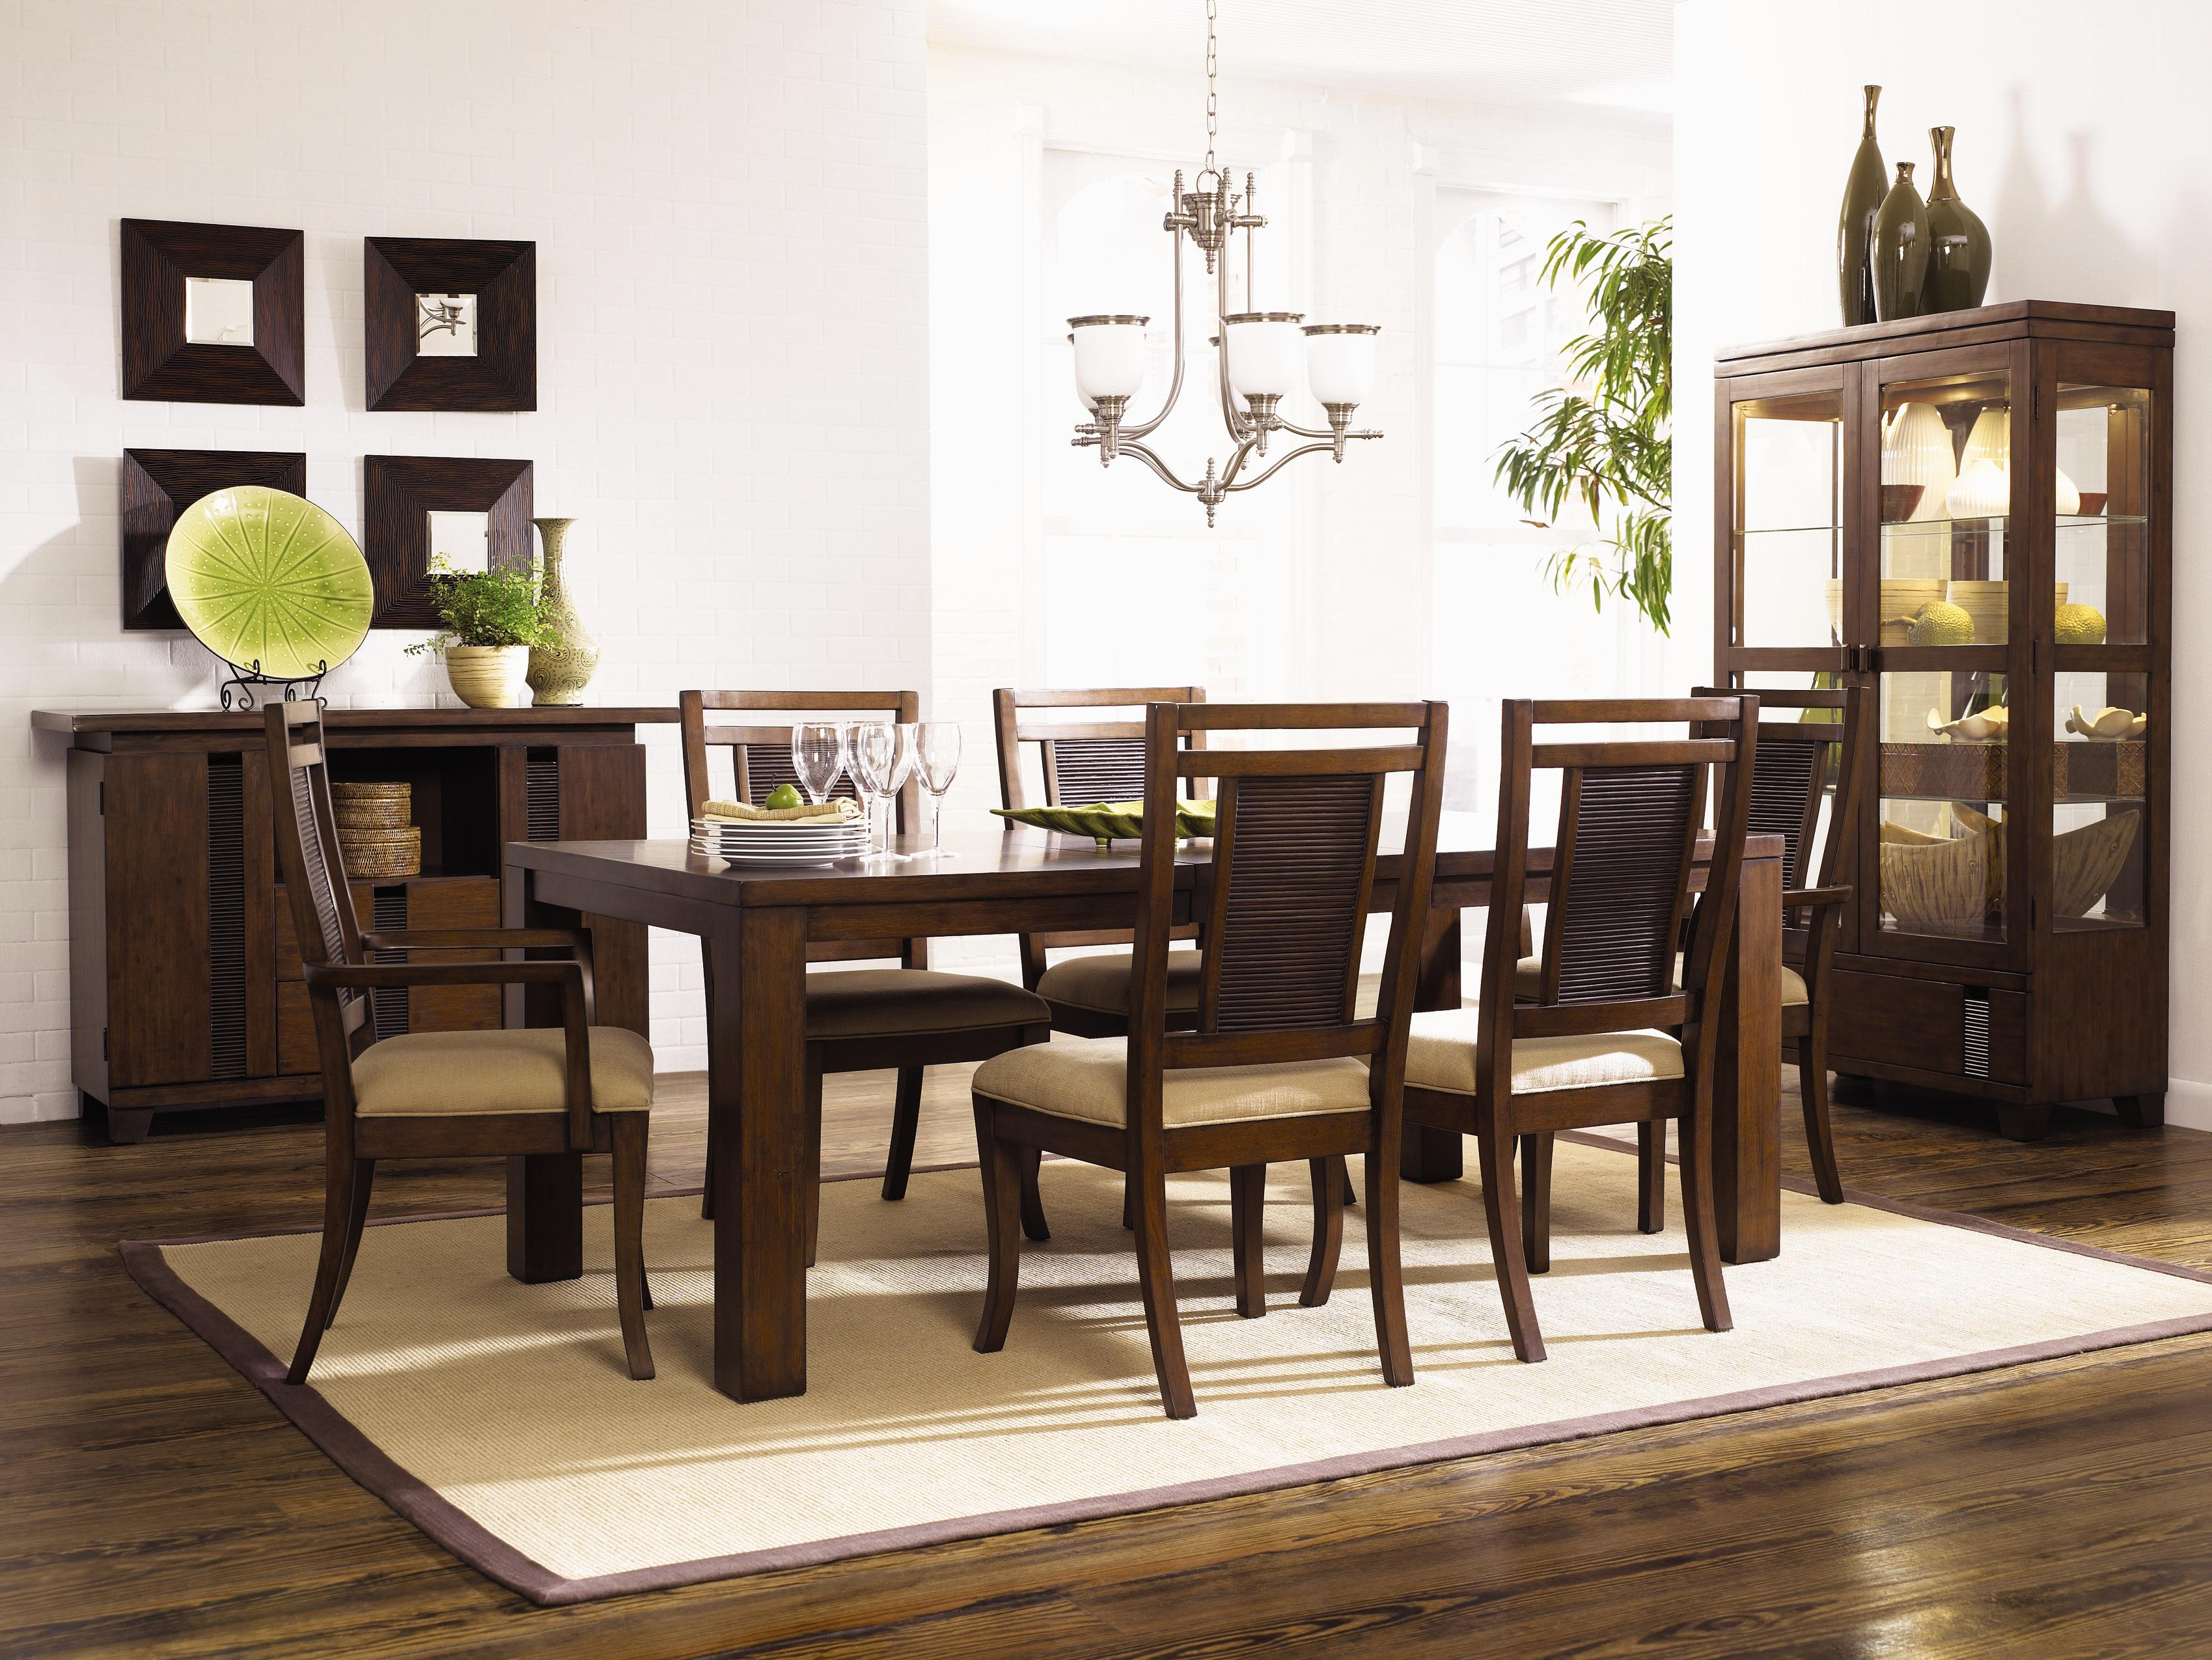 whatisnewtoday all wood furniture stores images - all wood furniture stores  all wood furniture stores